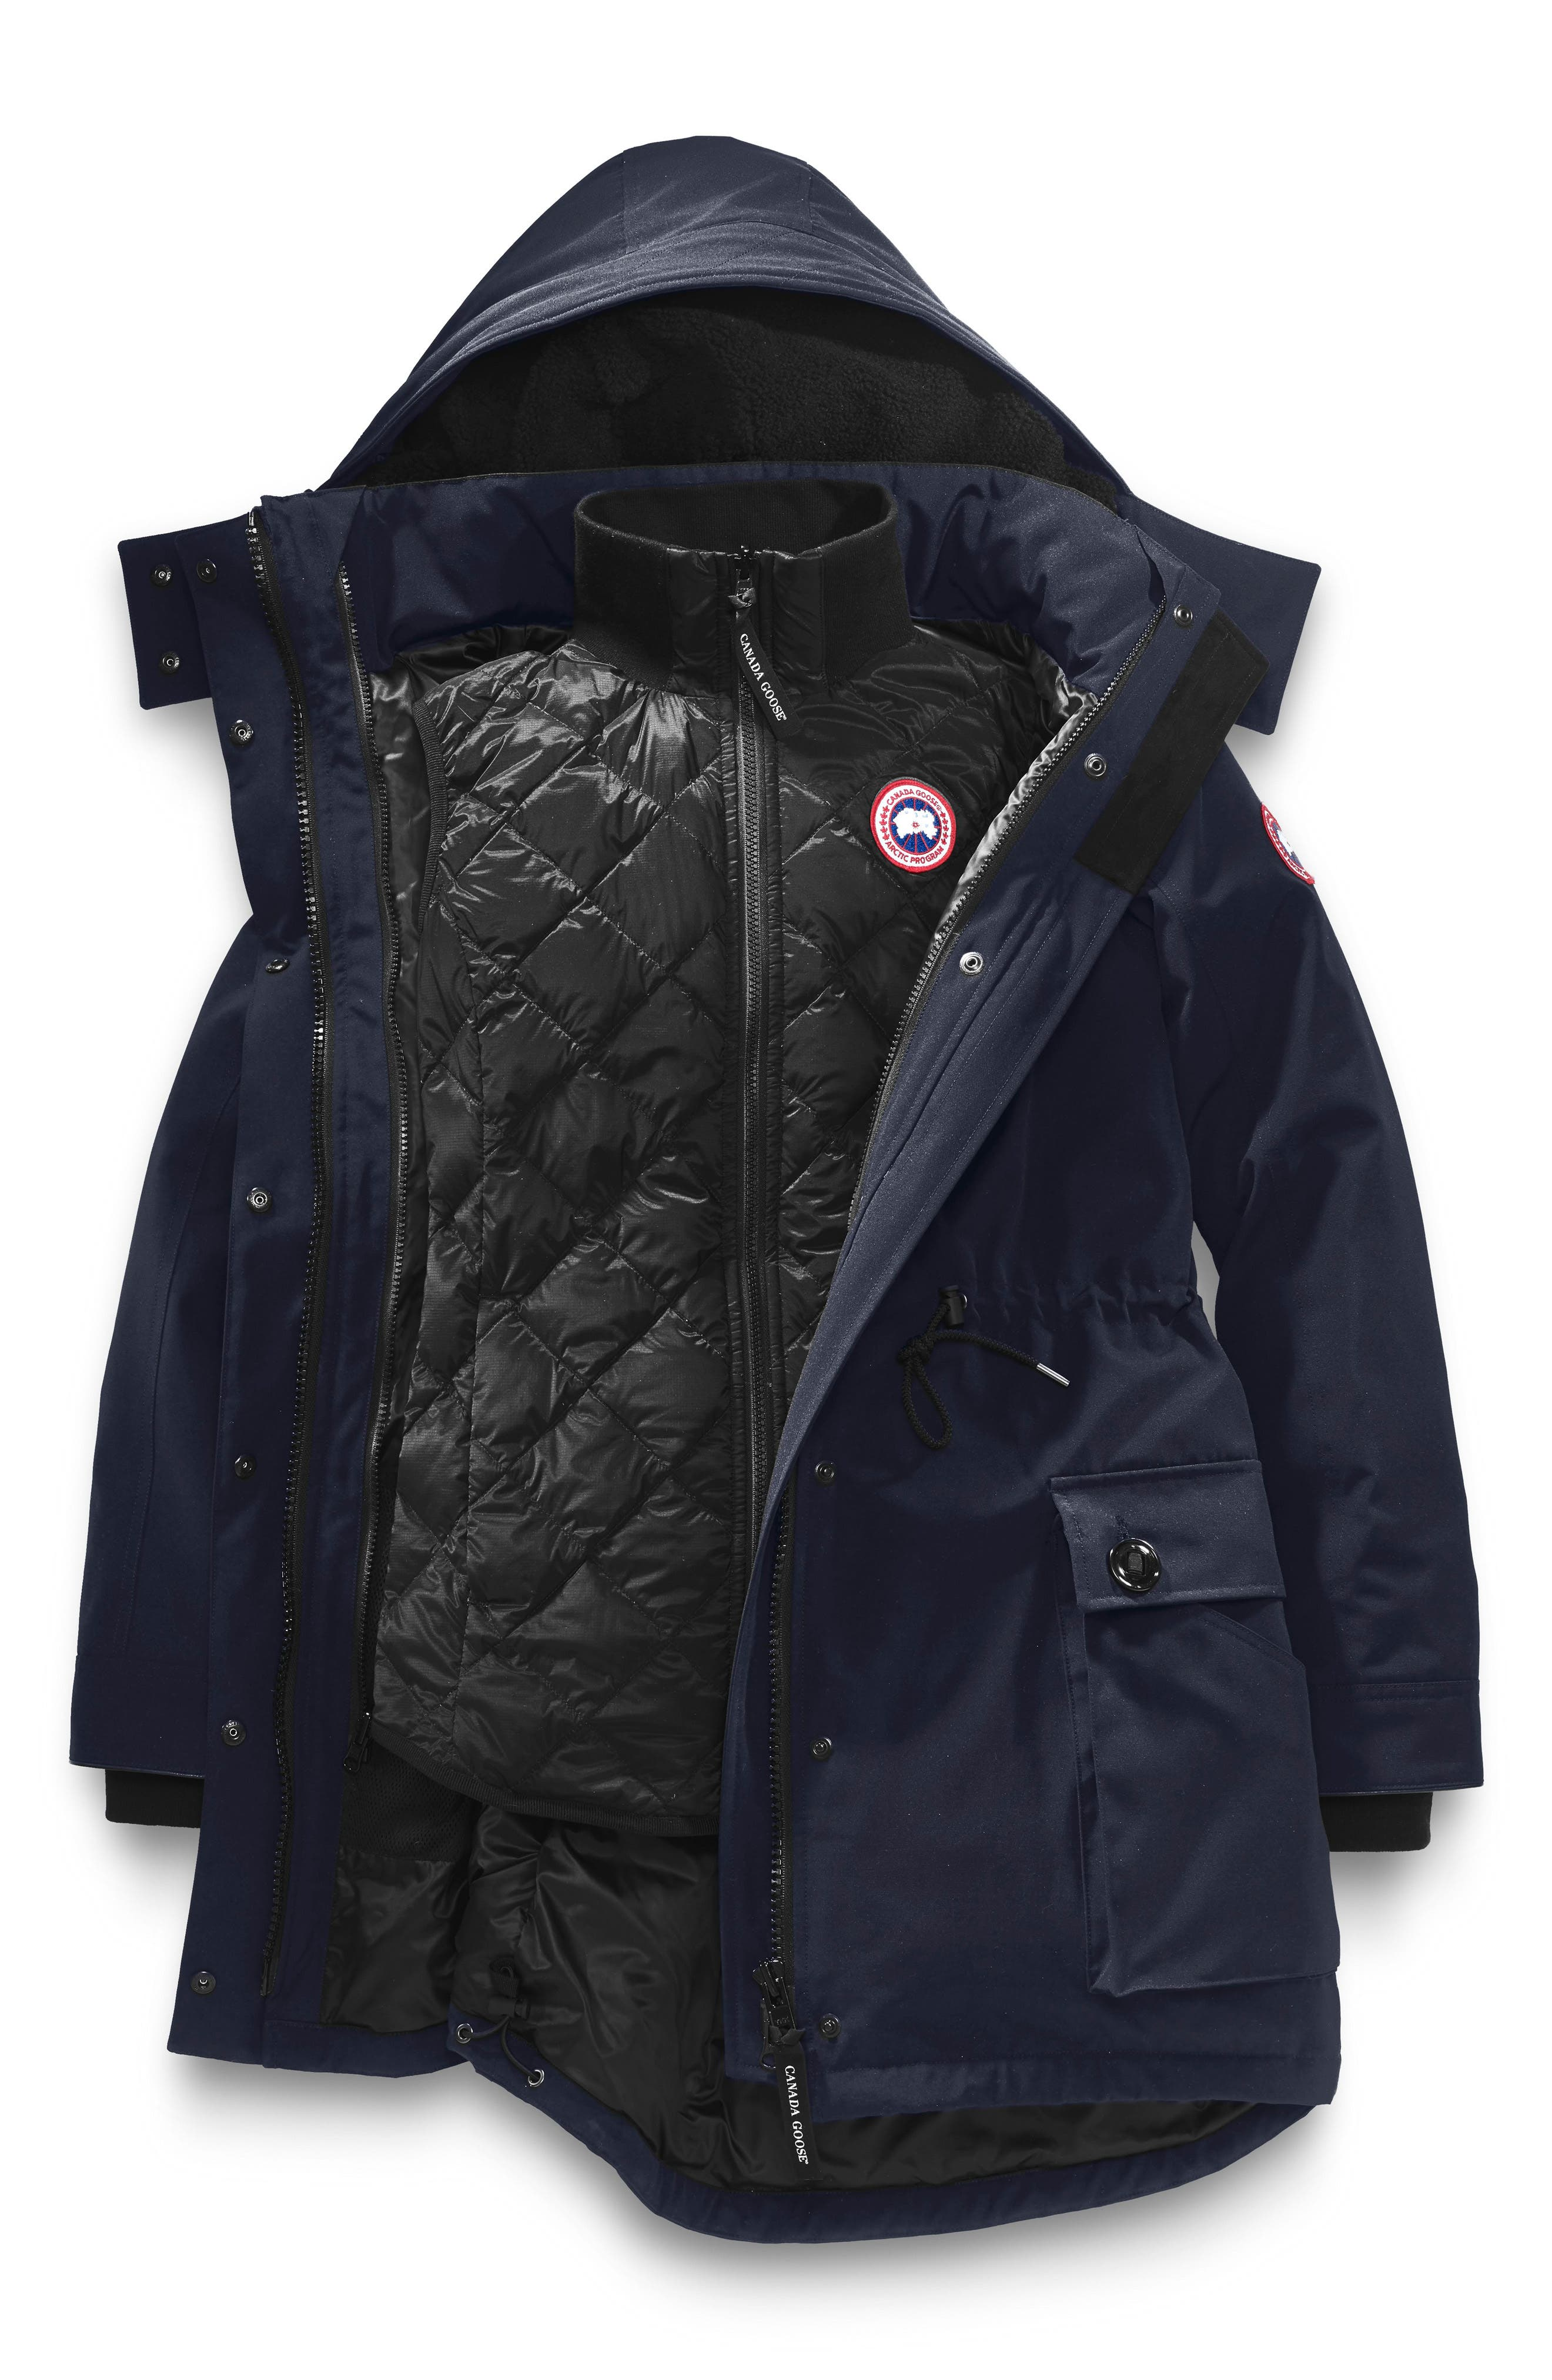 CANADA GOOSE, Perley Waterproof 675-Fill-Power Down 3-in-1 Parka, Alternate thumbnail 5, color, ADMIRAL BLUE